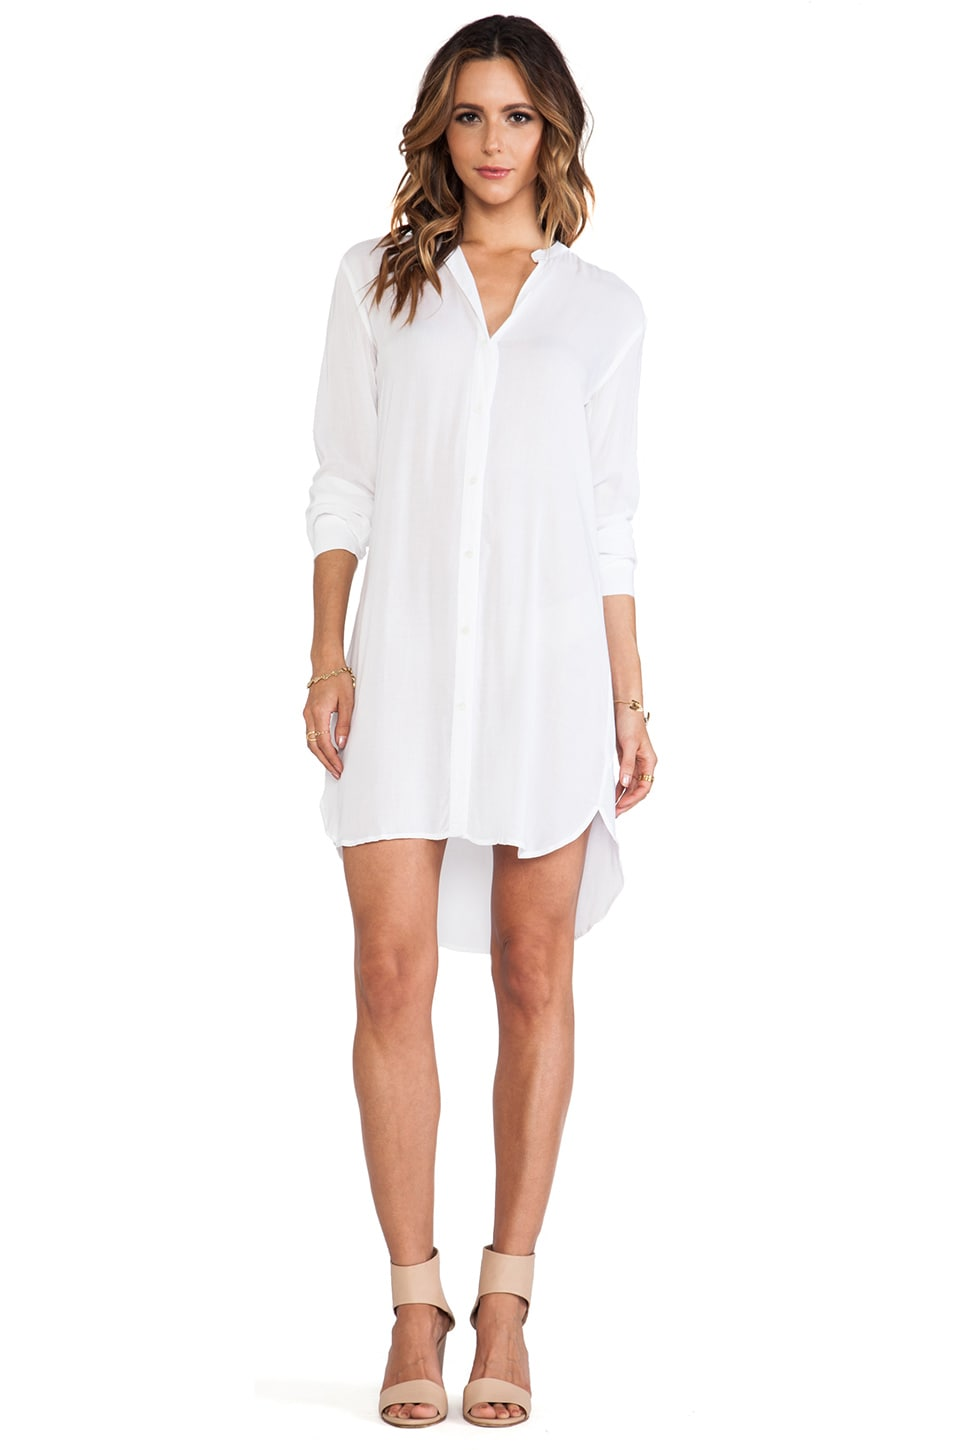 James perse collarless shirt dress shopyourway for Baseball button up t shirt dress